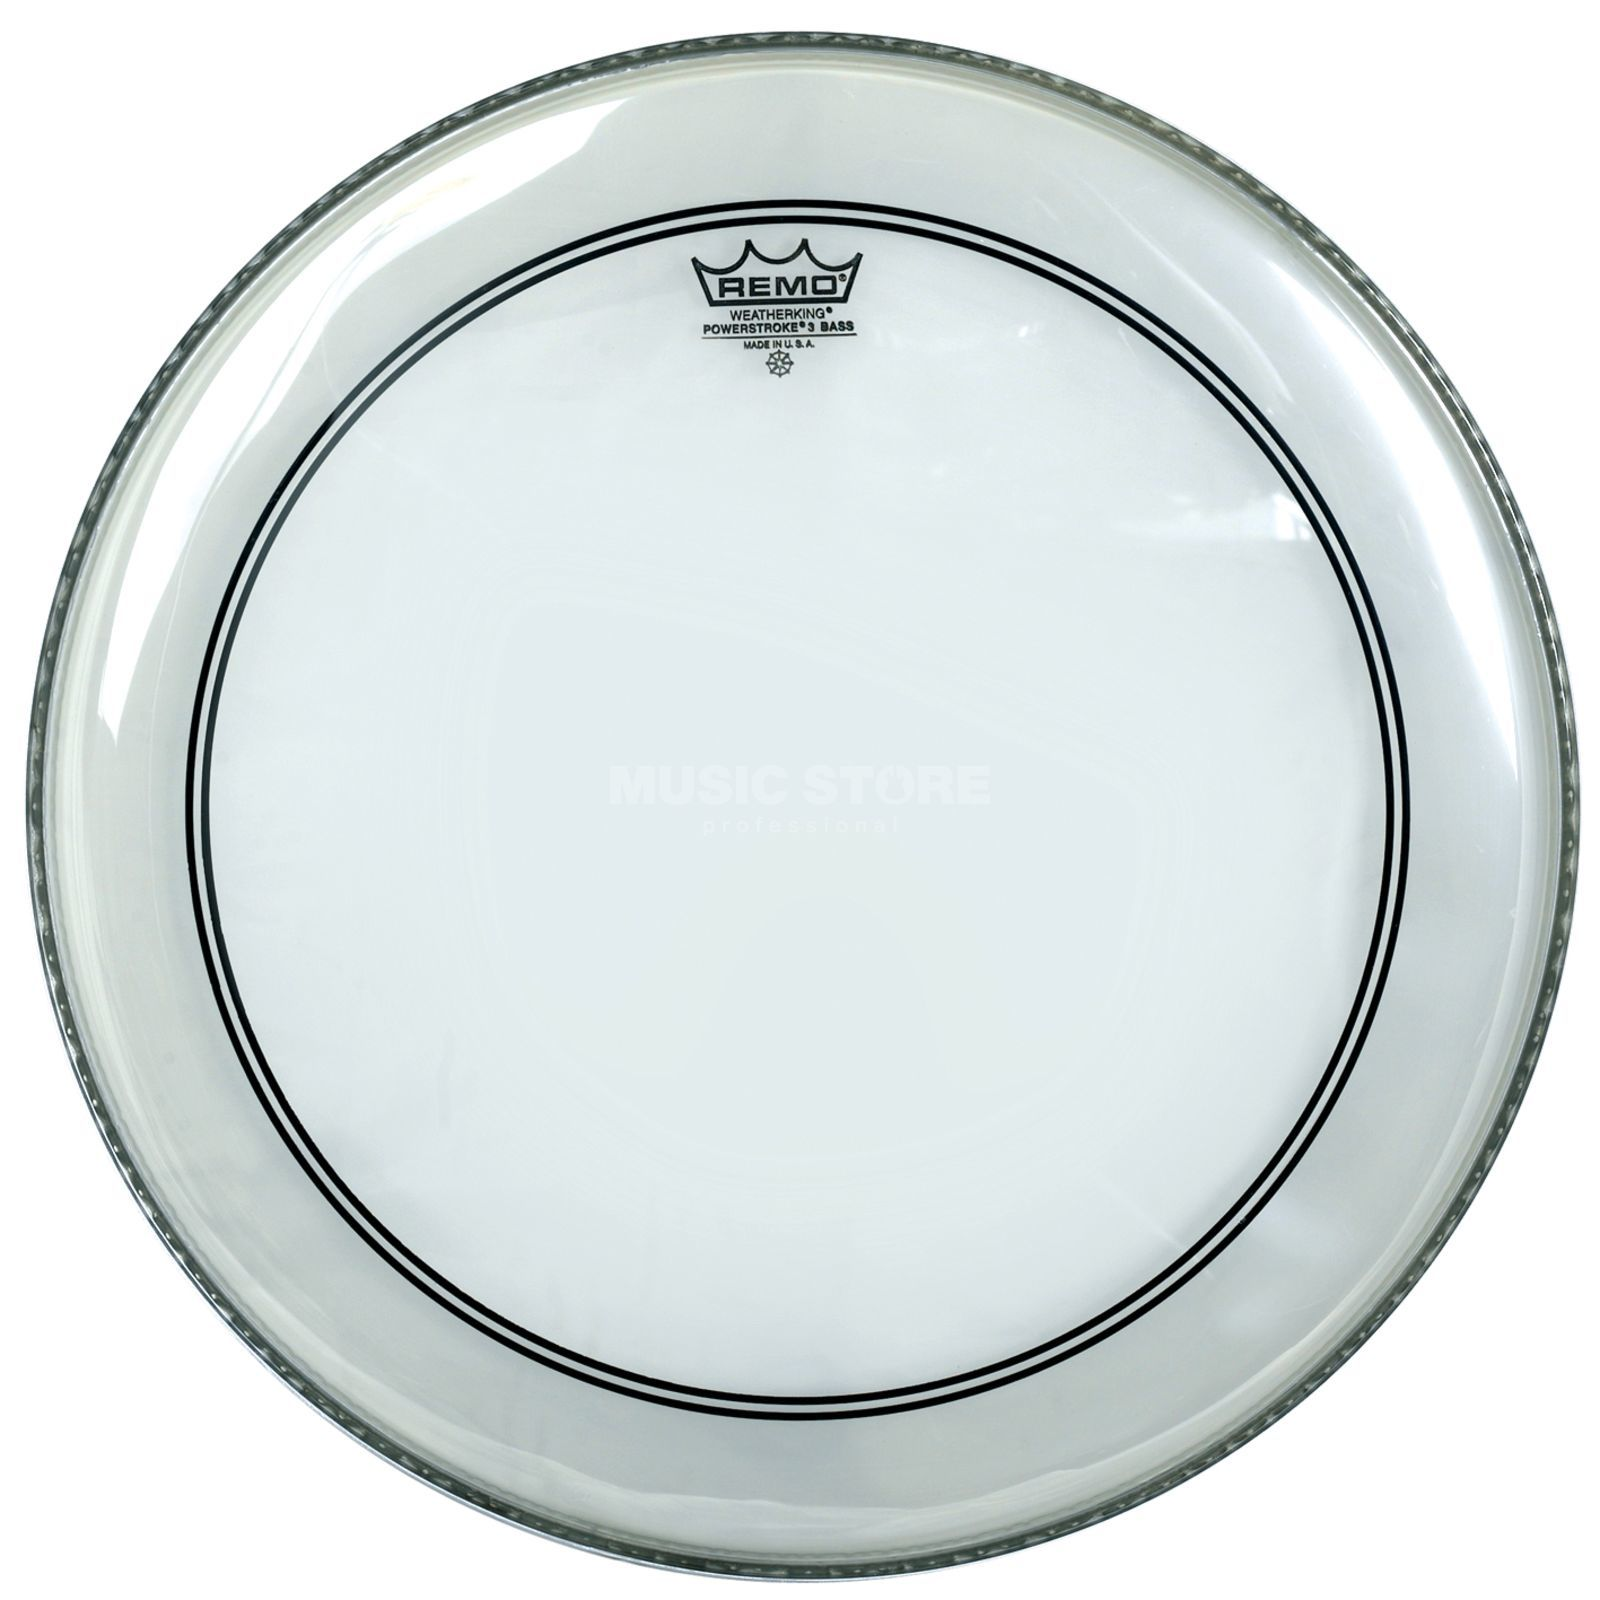 "Remo Powerstroke 3 Clear 20"", BassDrum Batter/Reso Изображение товара"